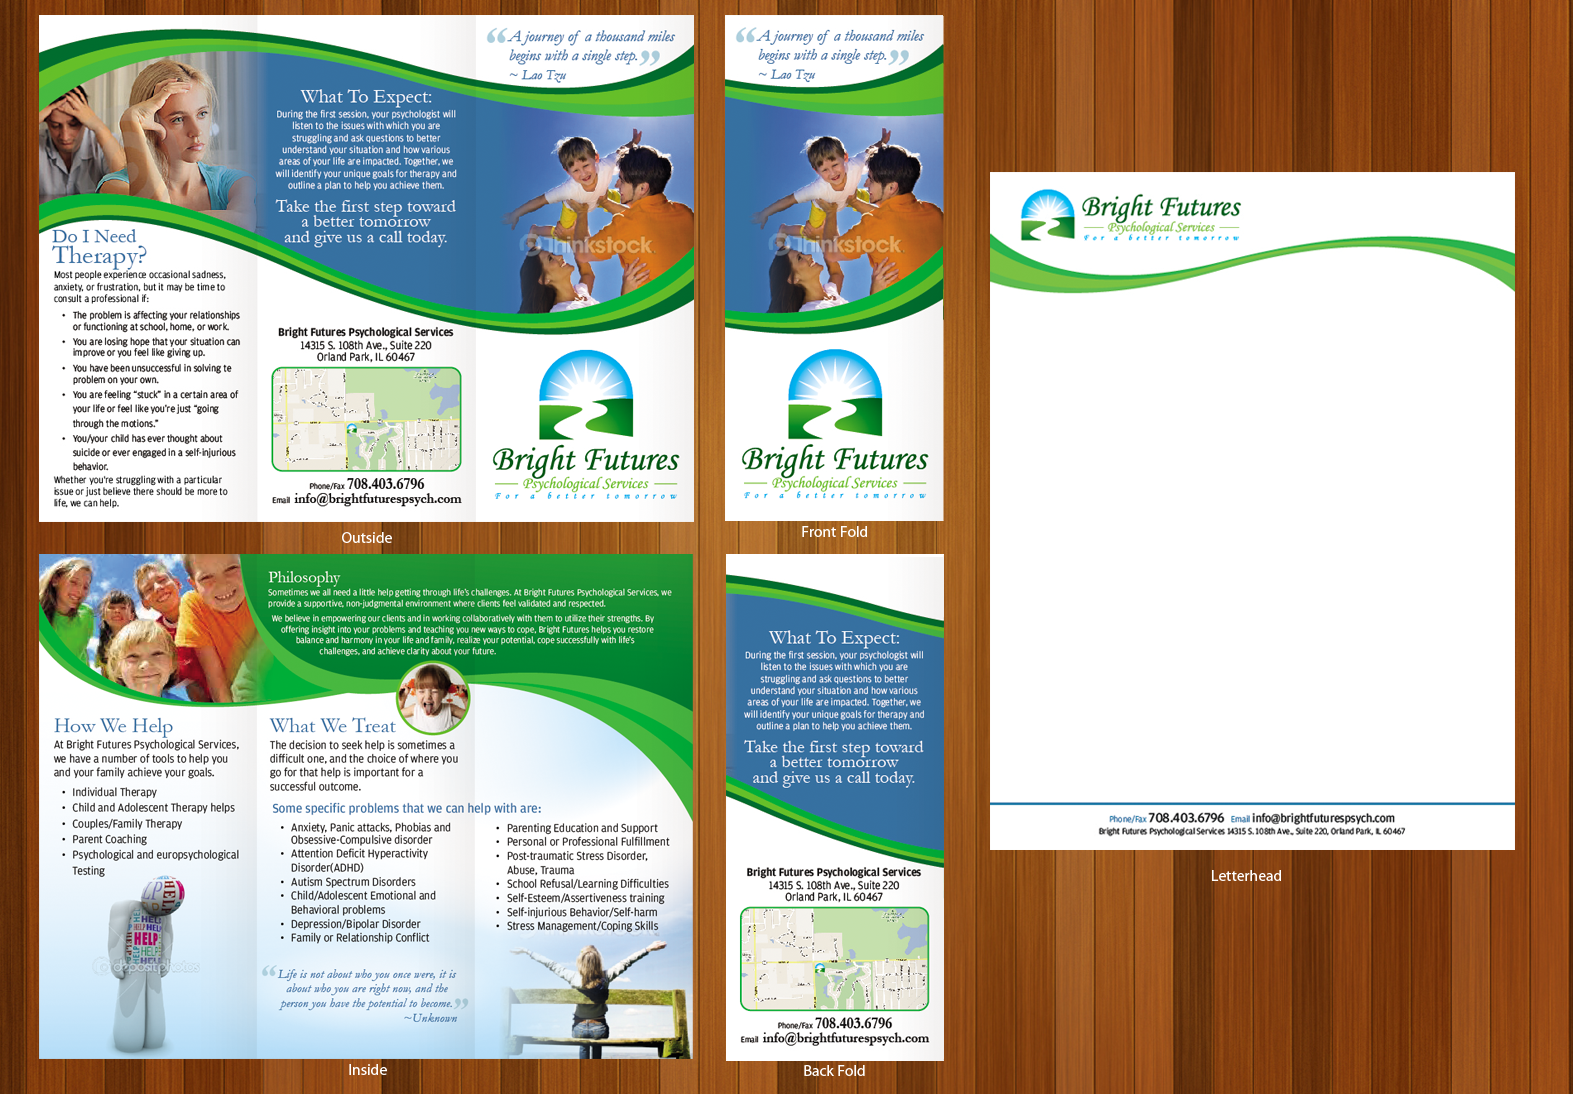 Psychology Practice Brochure and Letterhead - Health